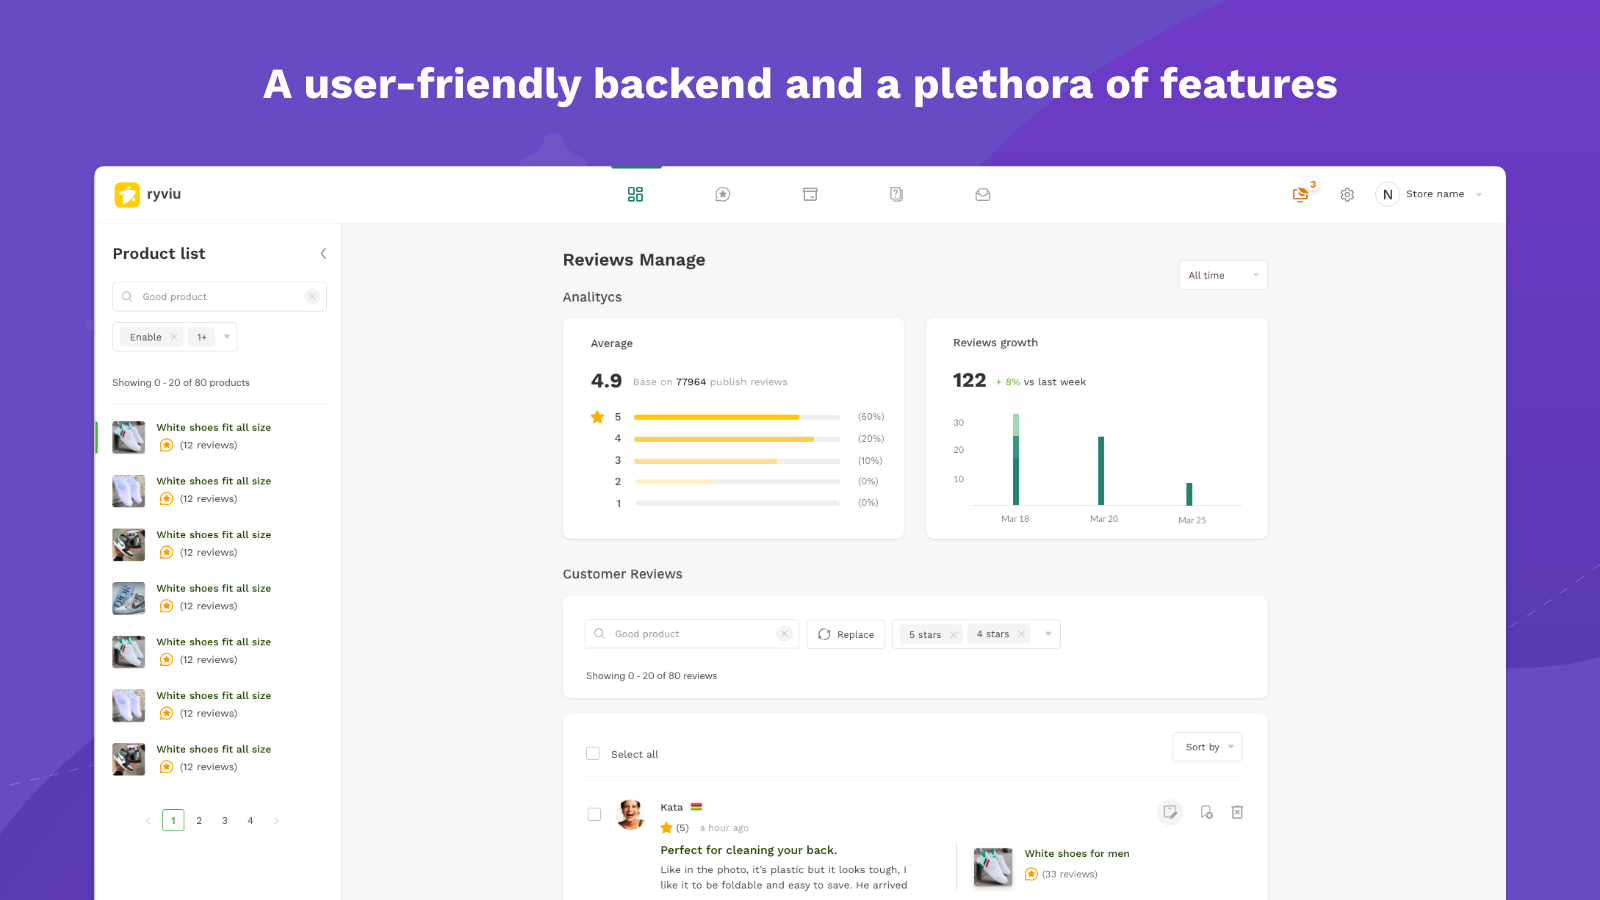 A user-friendly backend and a plethora of features